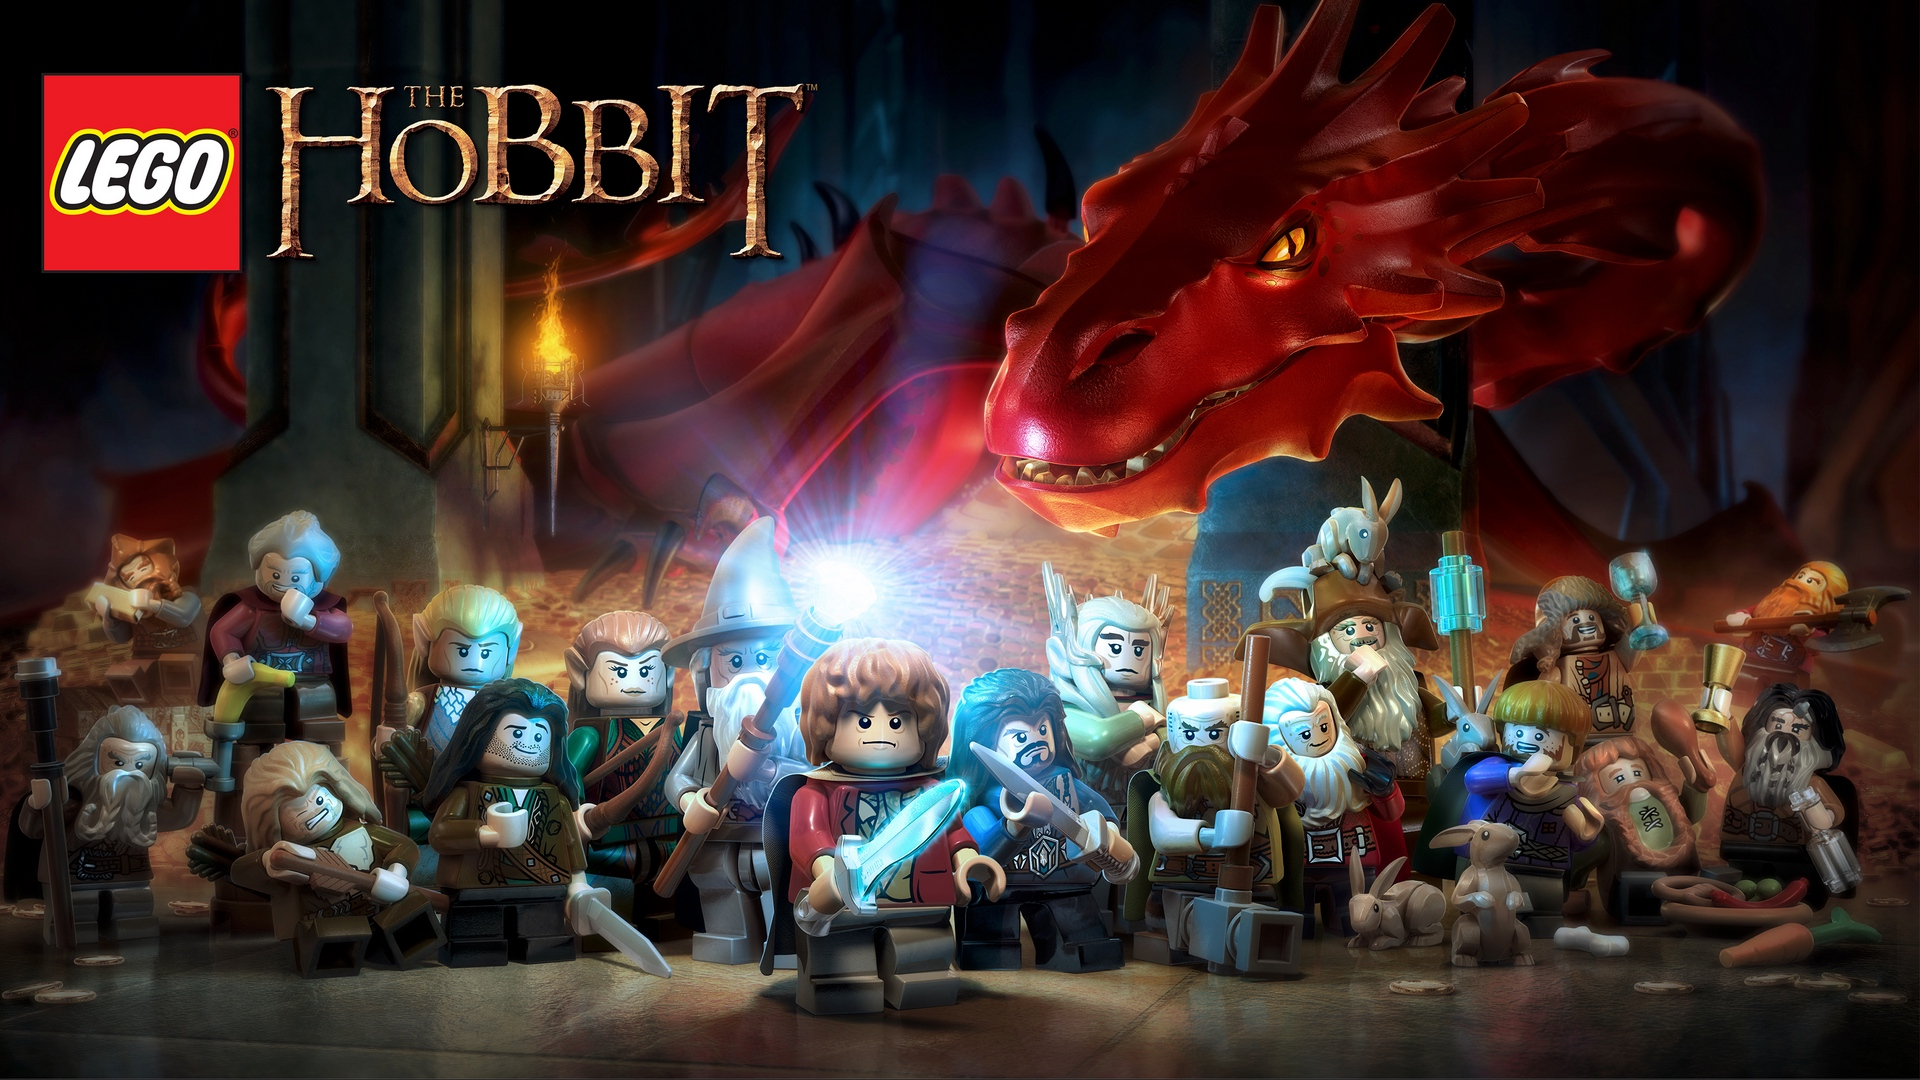 download wallpaper: LEGO The Hobbit personages wallpaper